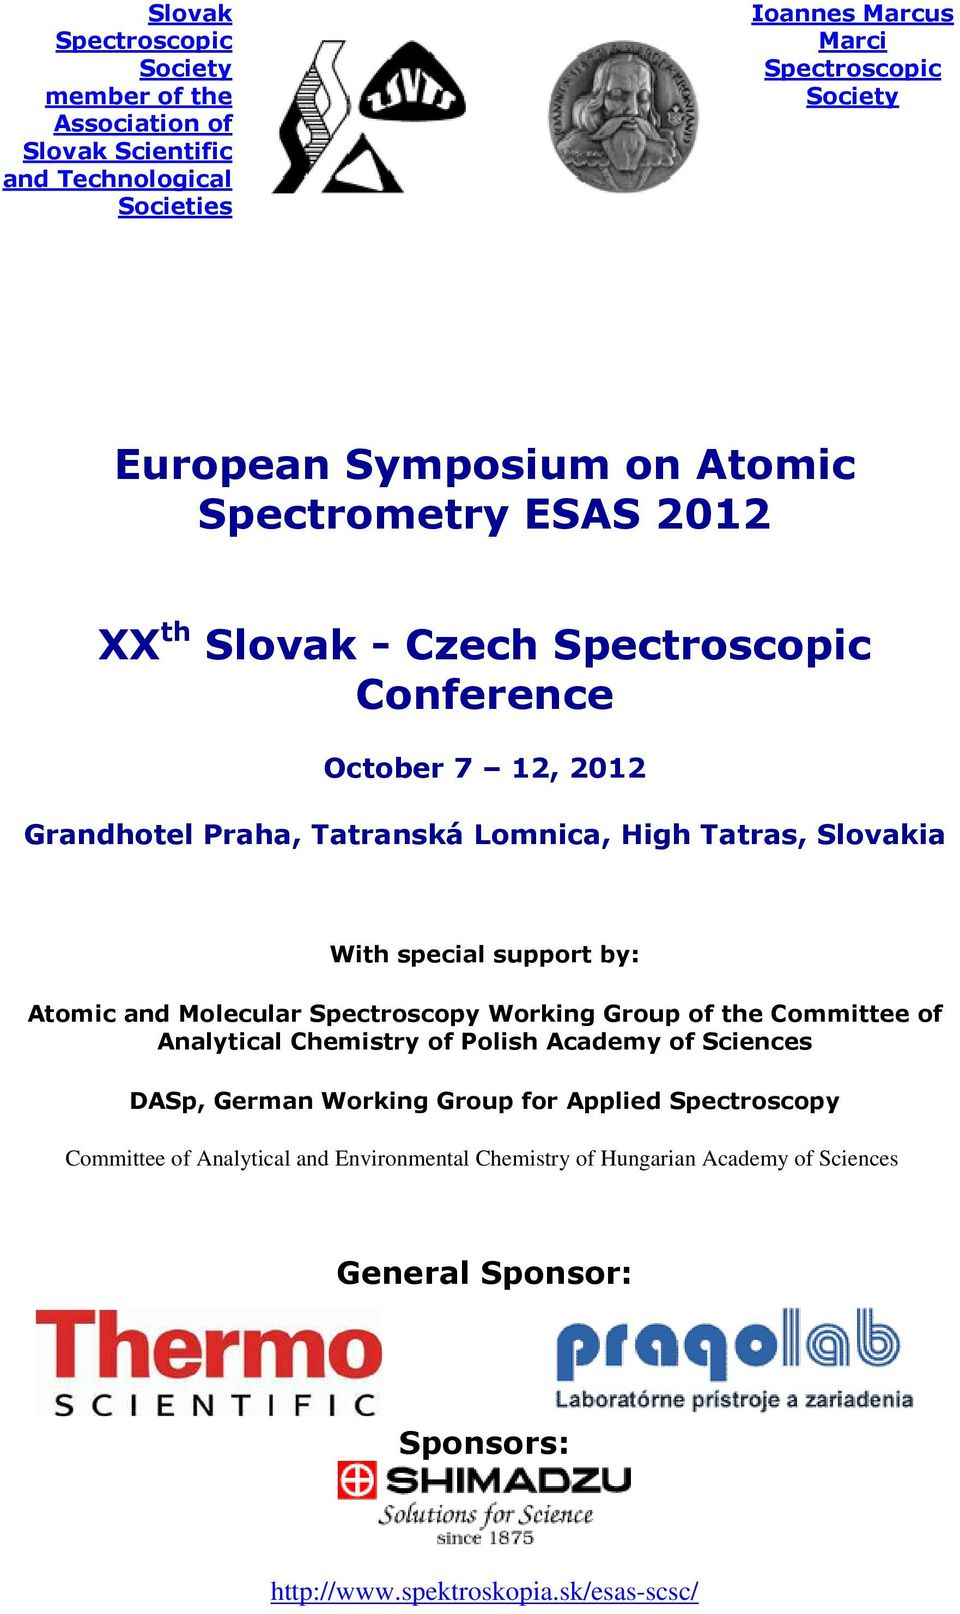 special support by: Atomic and Molecular Spectroscopy Working Group of the Committee of Analytical Chemistry of Polish Academy of Sciences DASp, German Working Group